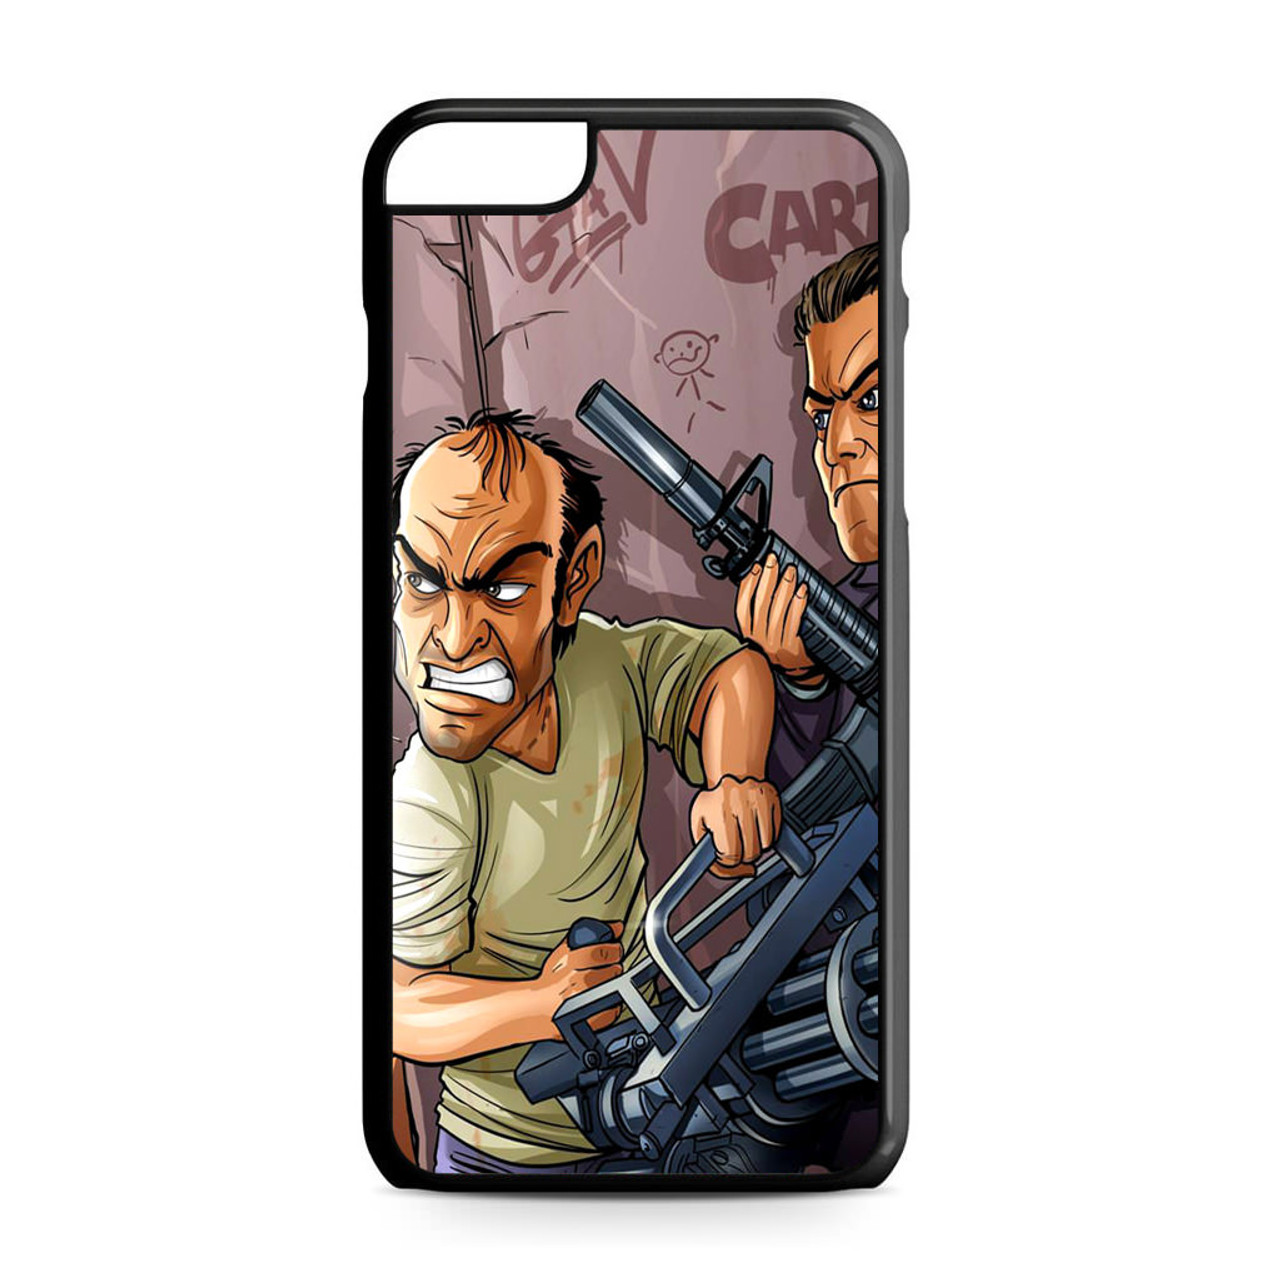 gta v iphone case iphone 6s